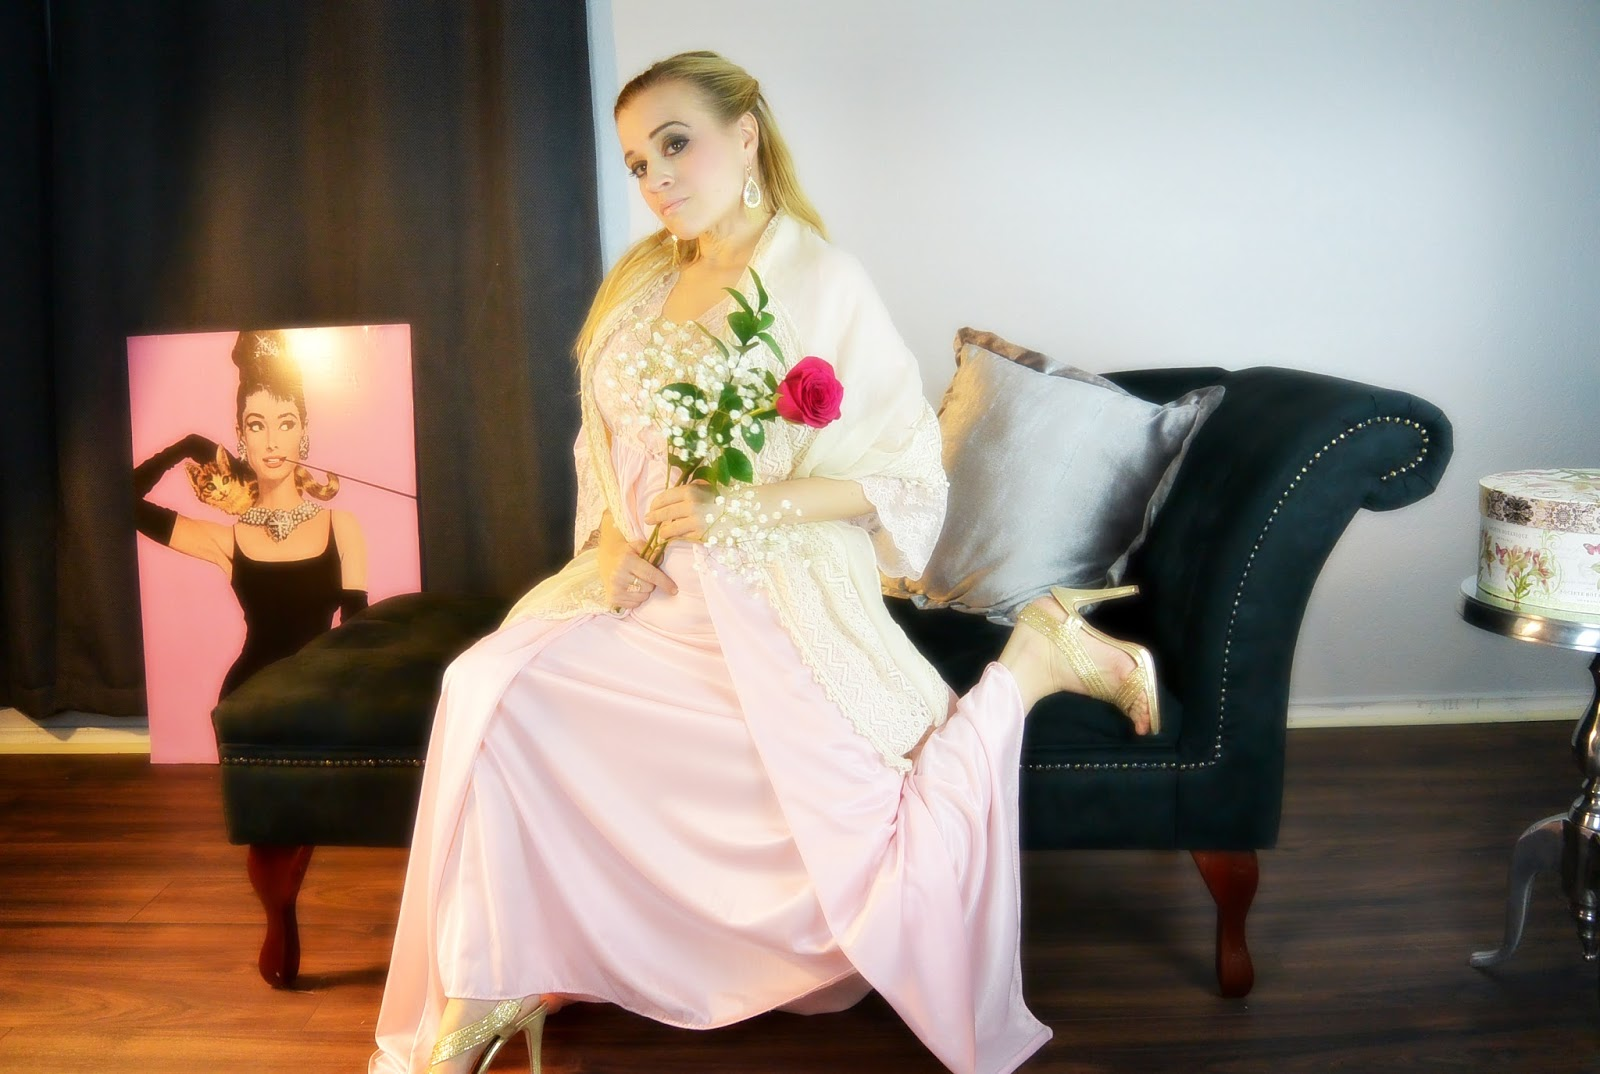 blonde modeling vintage nightgown on chaise